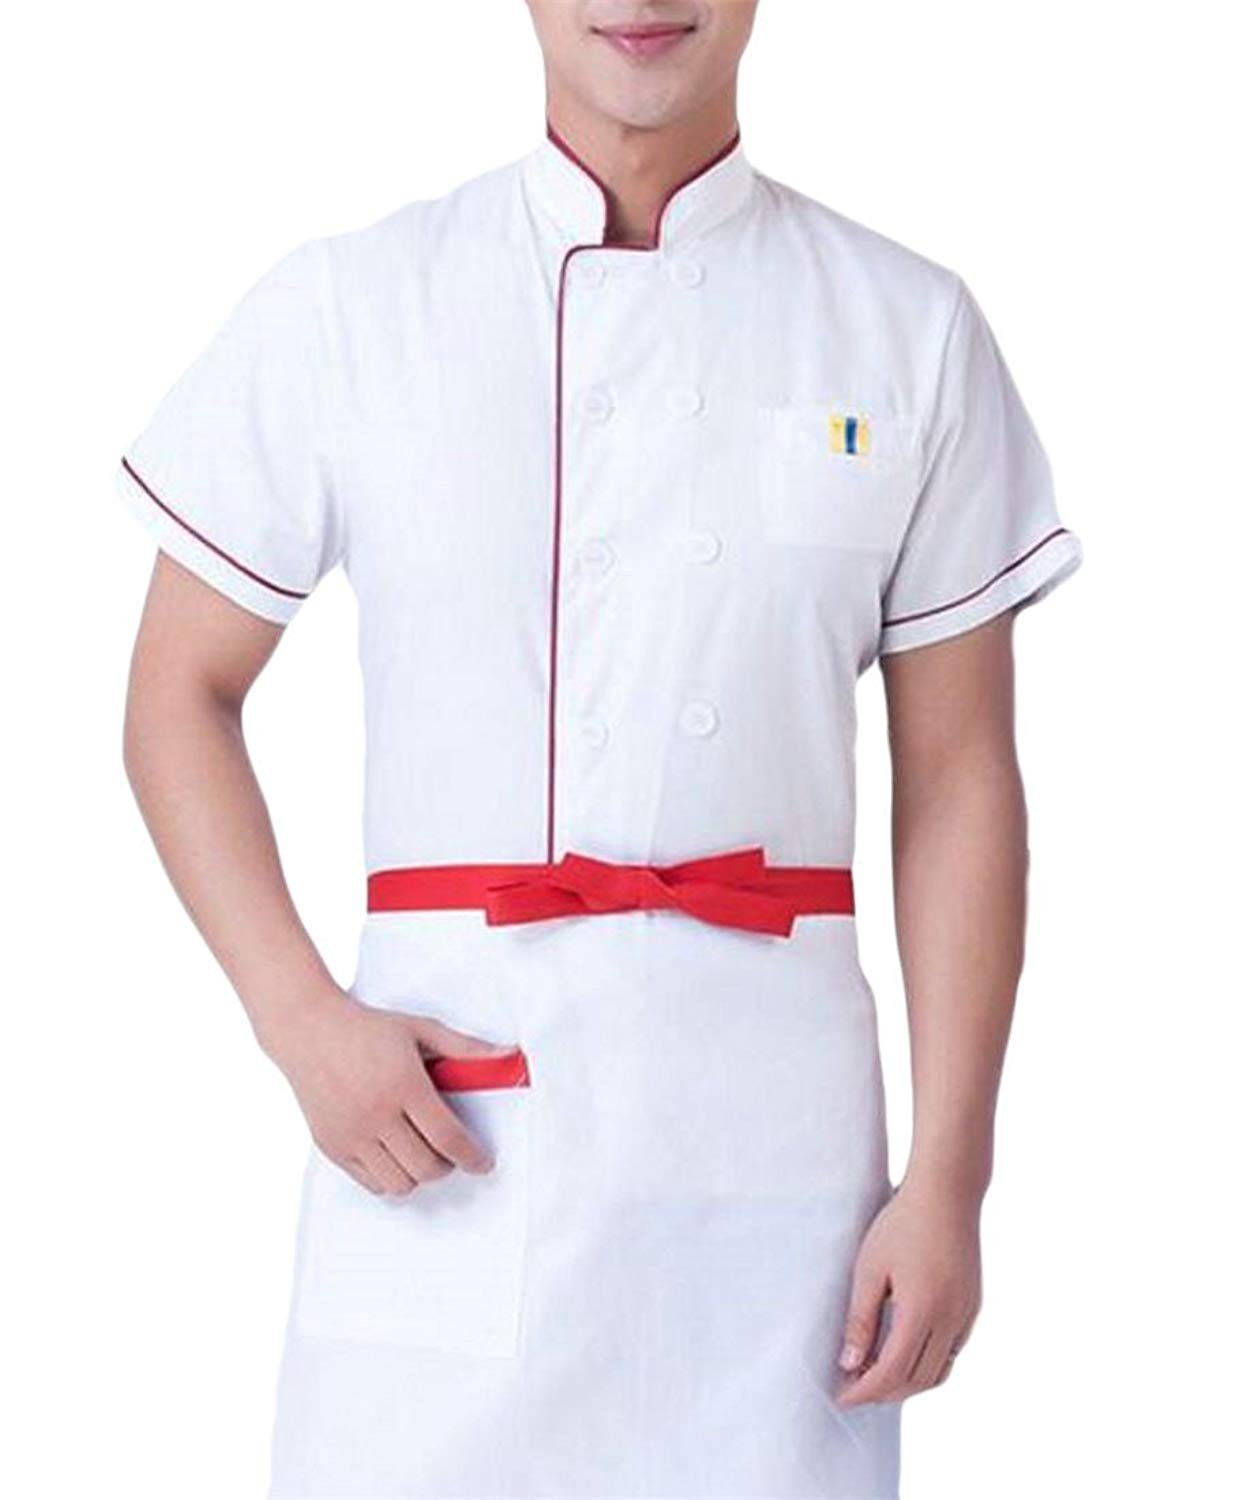 XiaoTianXin-men clothes XTX Men's Short Sleeve Unisex Cooking Shirt Waiter Chef Jacket